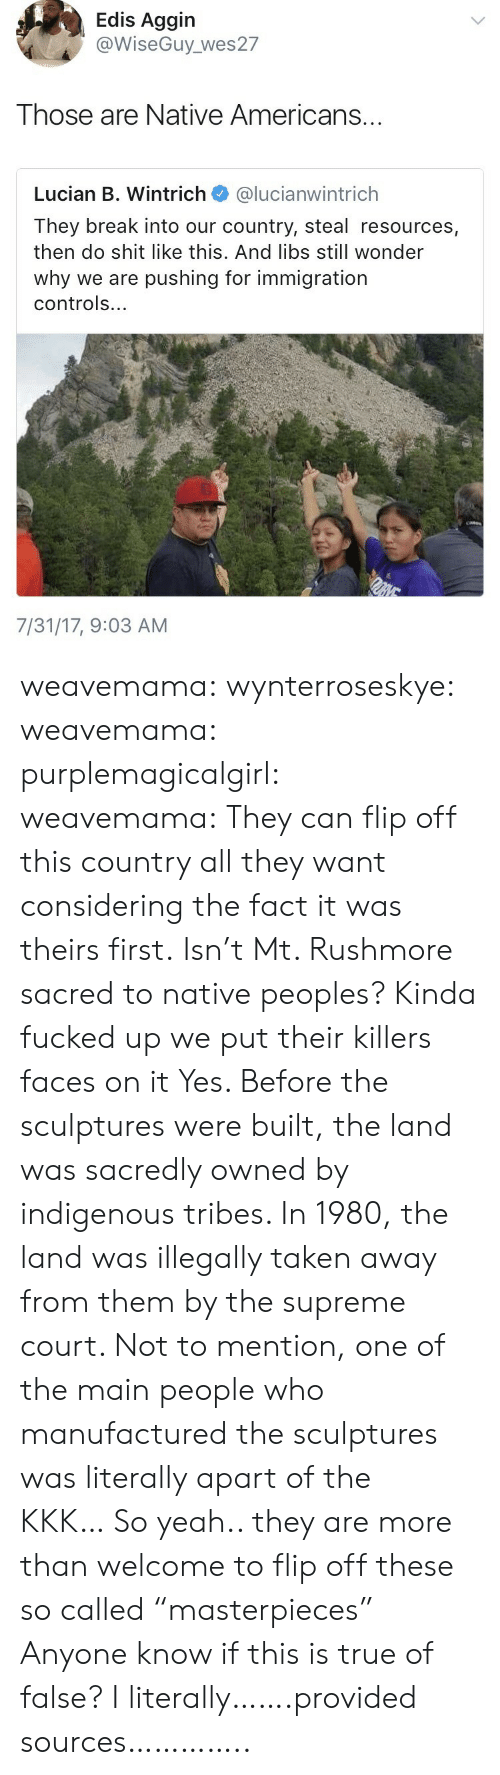 """Rushmore: Edis Aggin  @WiseGuy_ wes27  Those are Native Americans...  Lucian B. Wintrich @lucianwintrich  They break into our country, steal resources,  then do shit like this. And libs still wonder  why we are pushing for immigration  controls...  7/31/17, 9:03 AM weavemama: wynterroseskye:   weavemama:  purplemagicalgirl:  weavemama: They can flip off this country all they want considering the fact it was theirs first. Isn't Mt. Rushmore sacred to native peoples? Kinda fucked up we put their killers faces on it  Yes. Before the sculptures were built, the land was sacredly owned by indigenous tribes. In 1980, the land was illegally taken away from them by the supreme court. Not to mention, one of the main people who manufactured the sculptures was literally apart of the KKK…So yeah.. they are more than welcome to flip off these so called""""masterpieces""""   Anyone know if this is true of false?   I literally…….provided sources………….."""